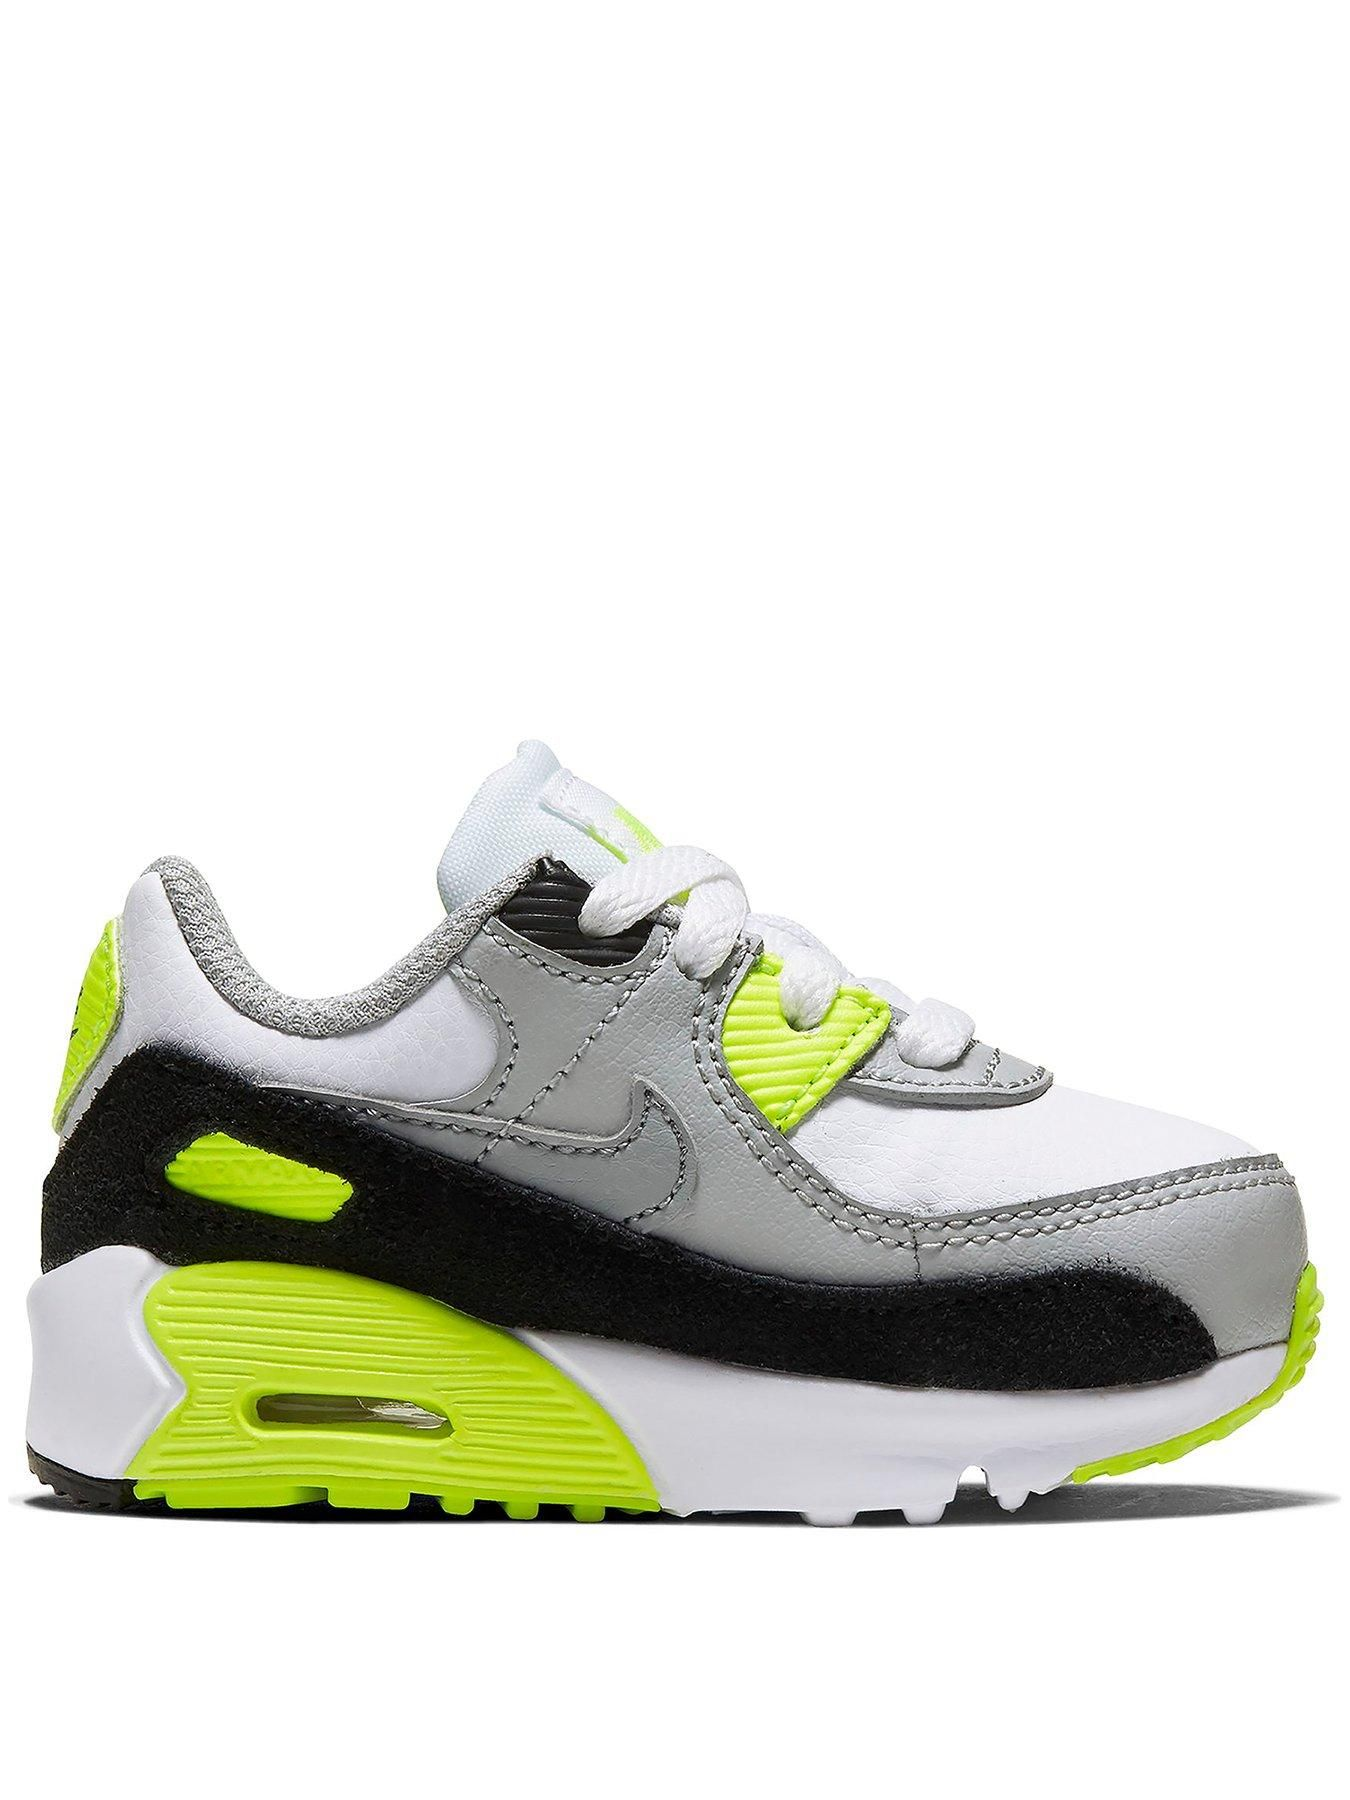 Air Max 90 Infant Trainers - White/Grey